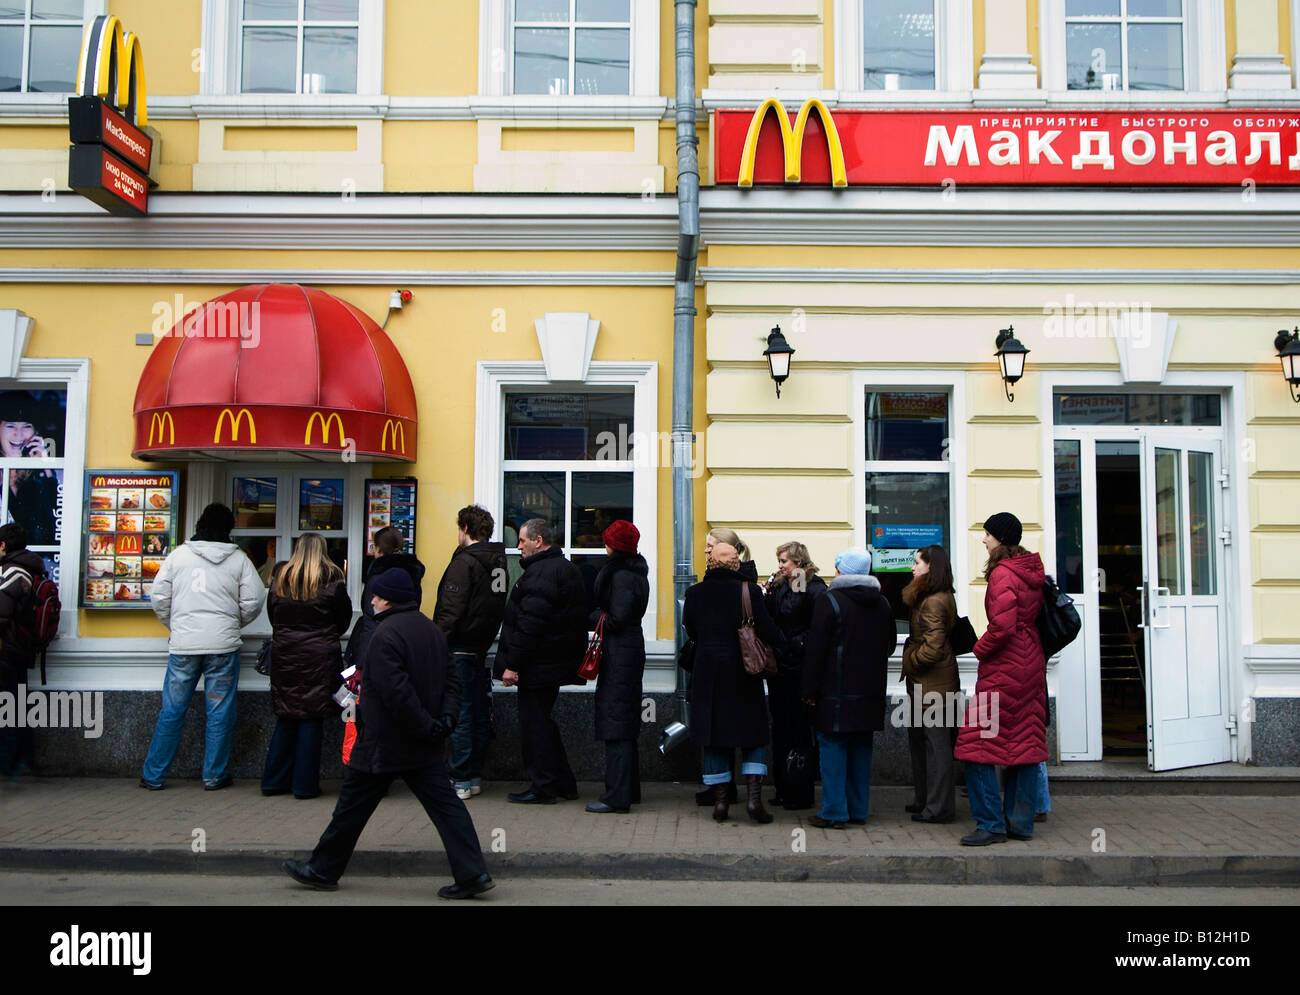 Macdonalds Moscow Russian Federation - Stock Image